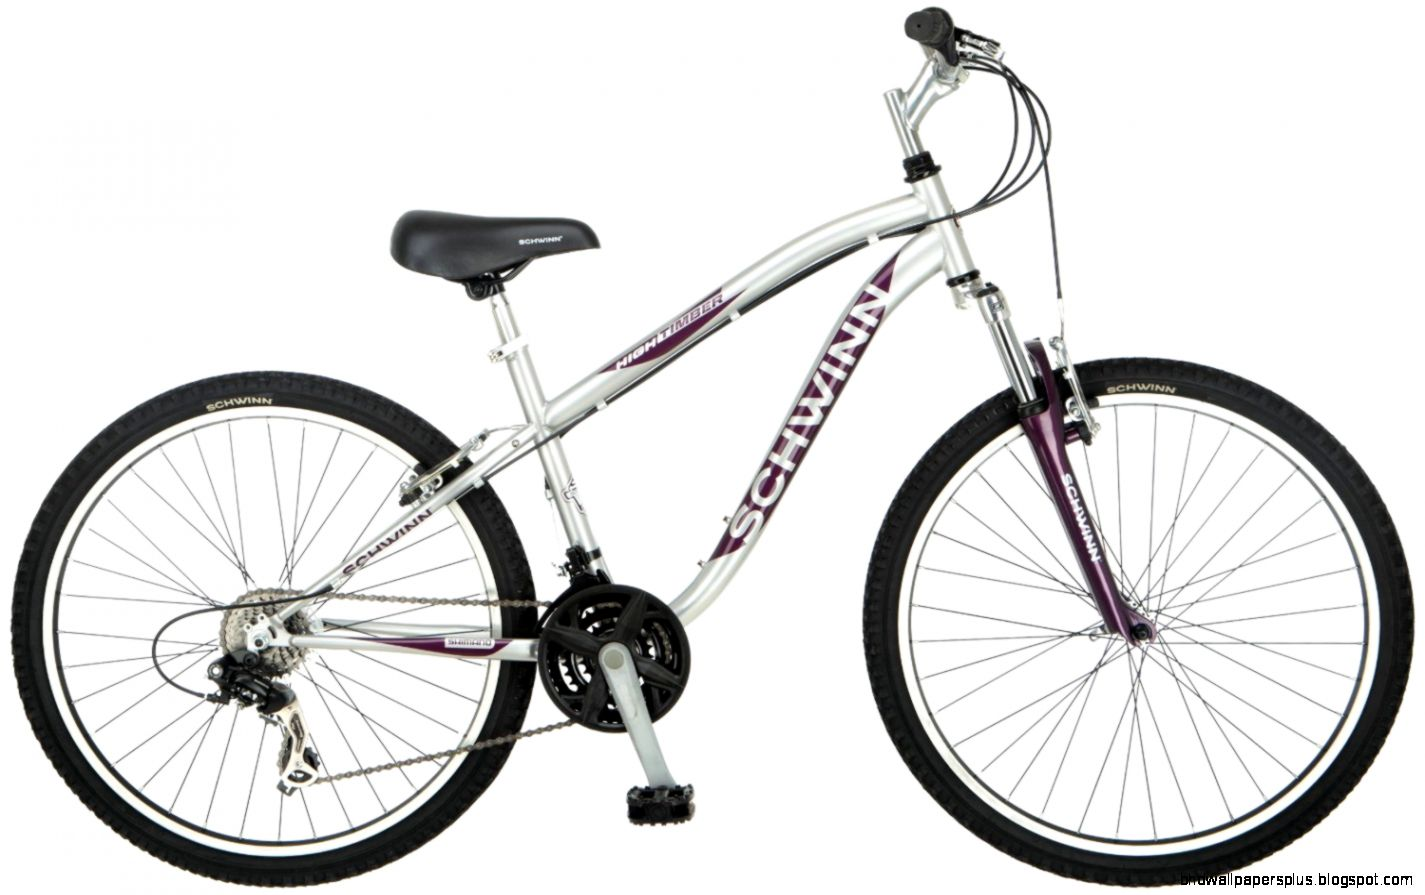 Silver Womens Small High Timber Mountain Bike by Schwinn